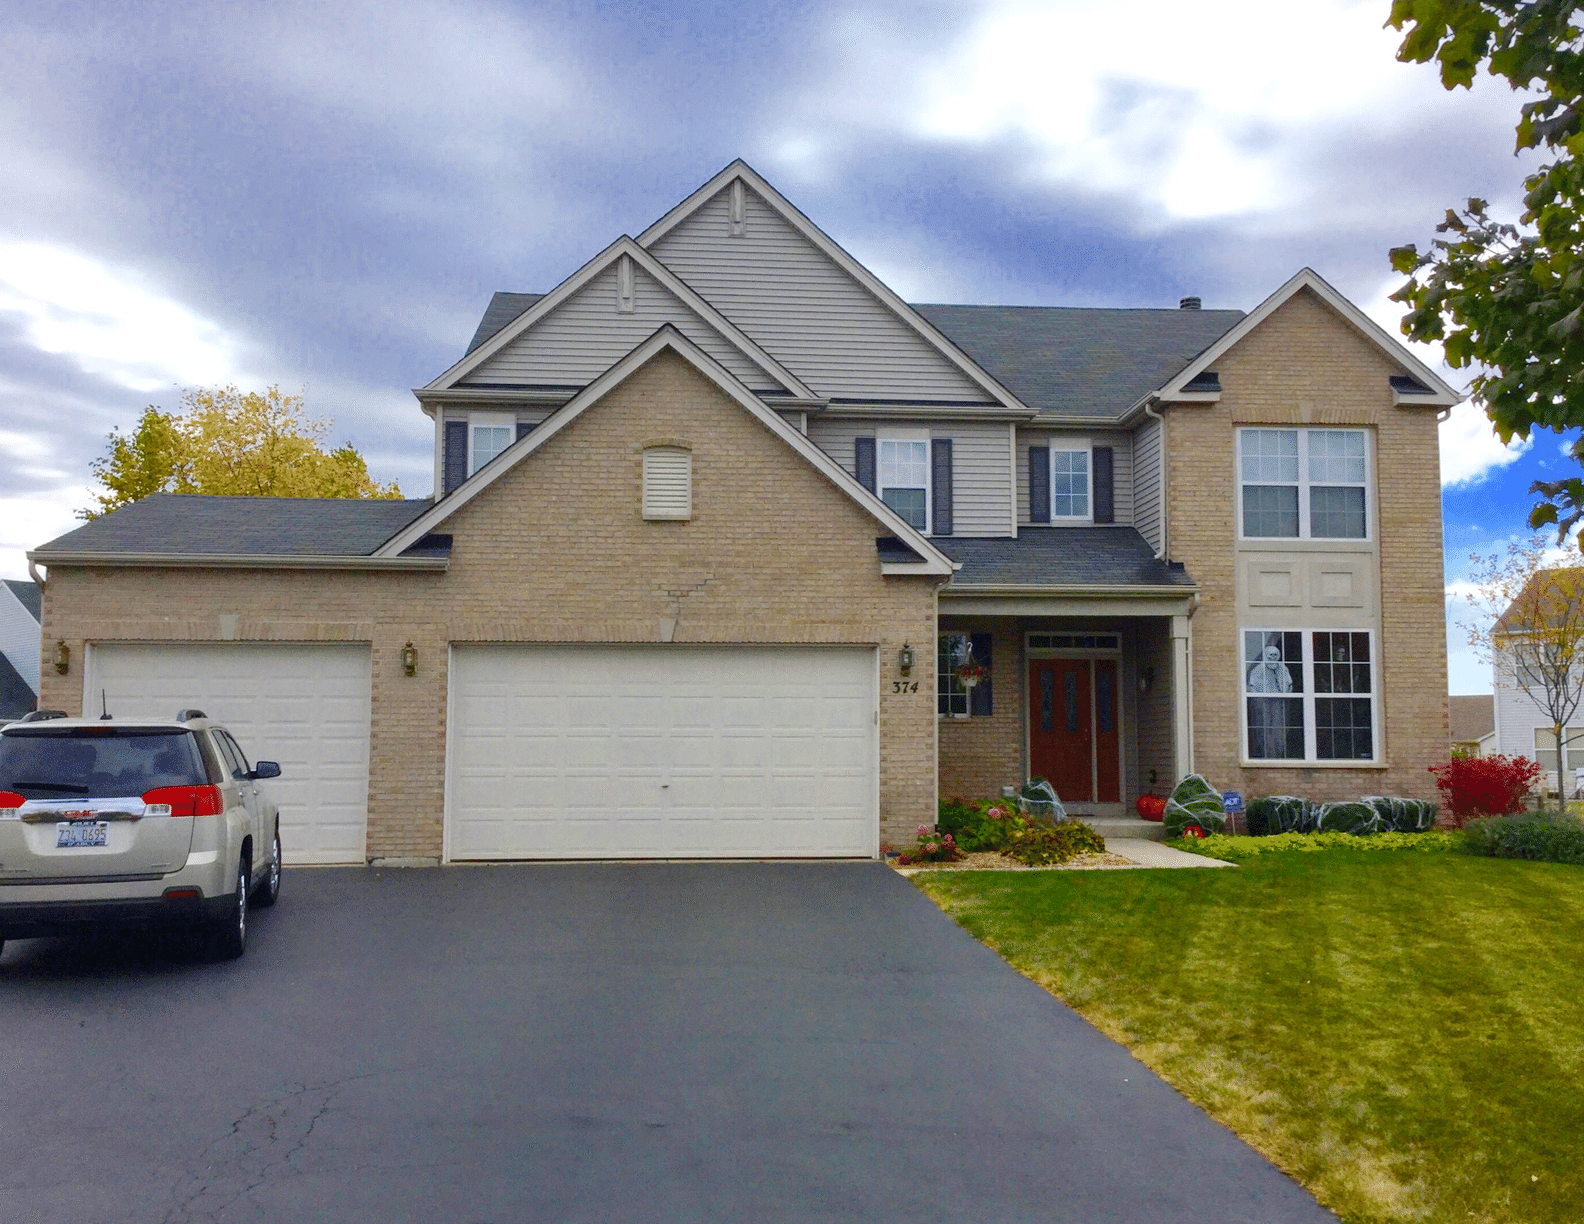 Romeoville, IL Certainteed Landmark Roof Replacement - After Photo